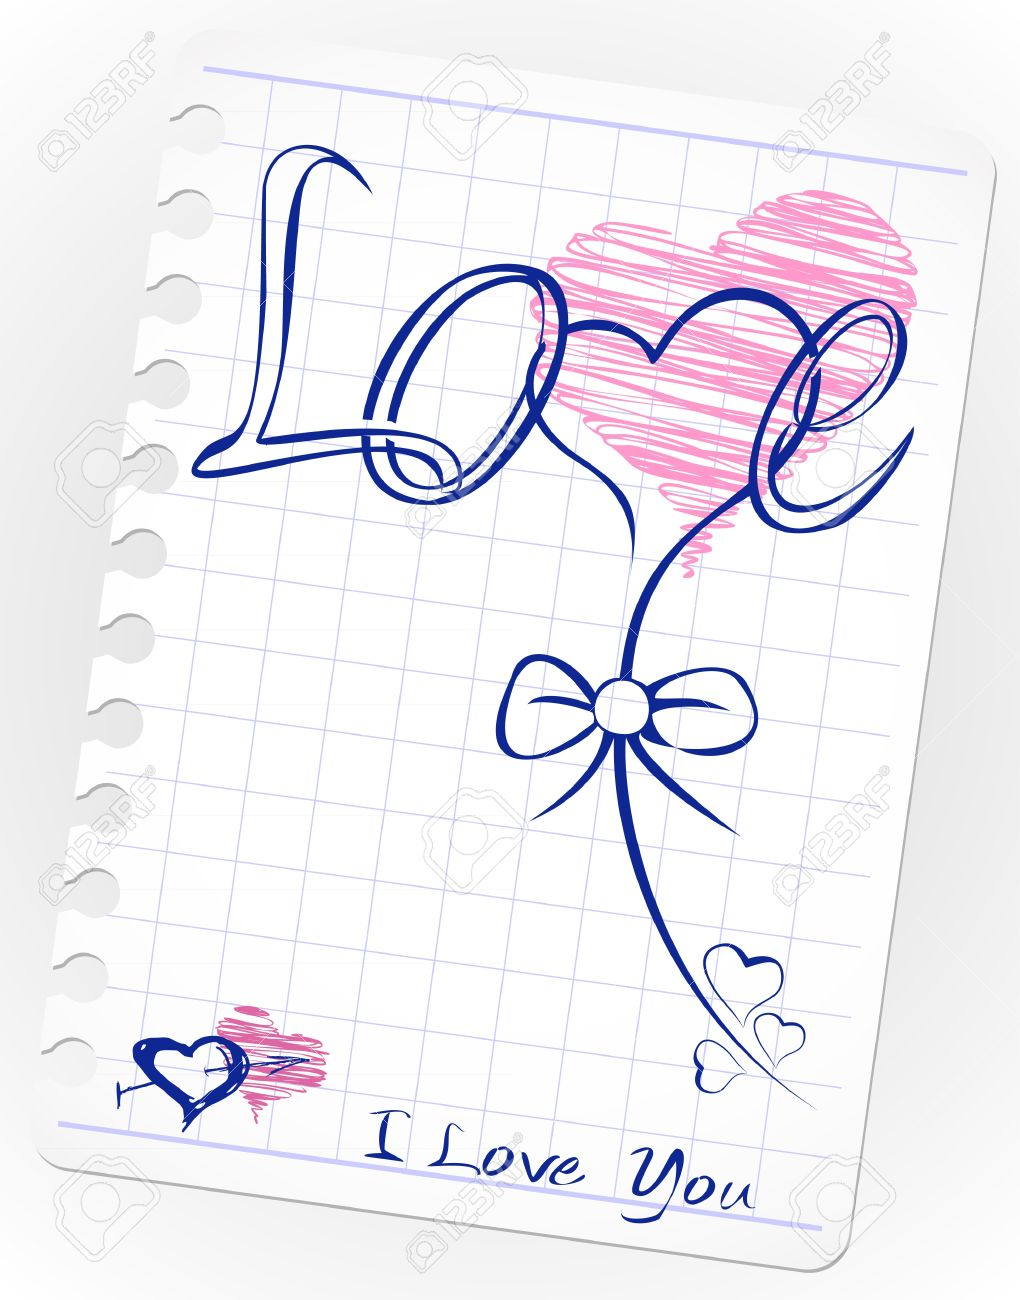 Love drawing doodles card hand drawn hearts love kiss lipstick heart